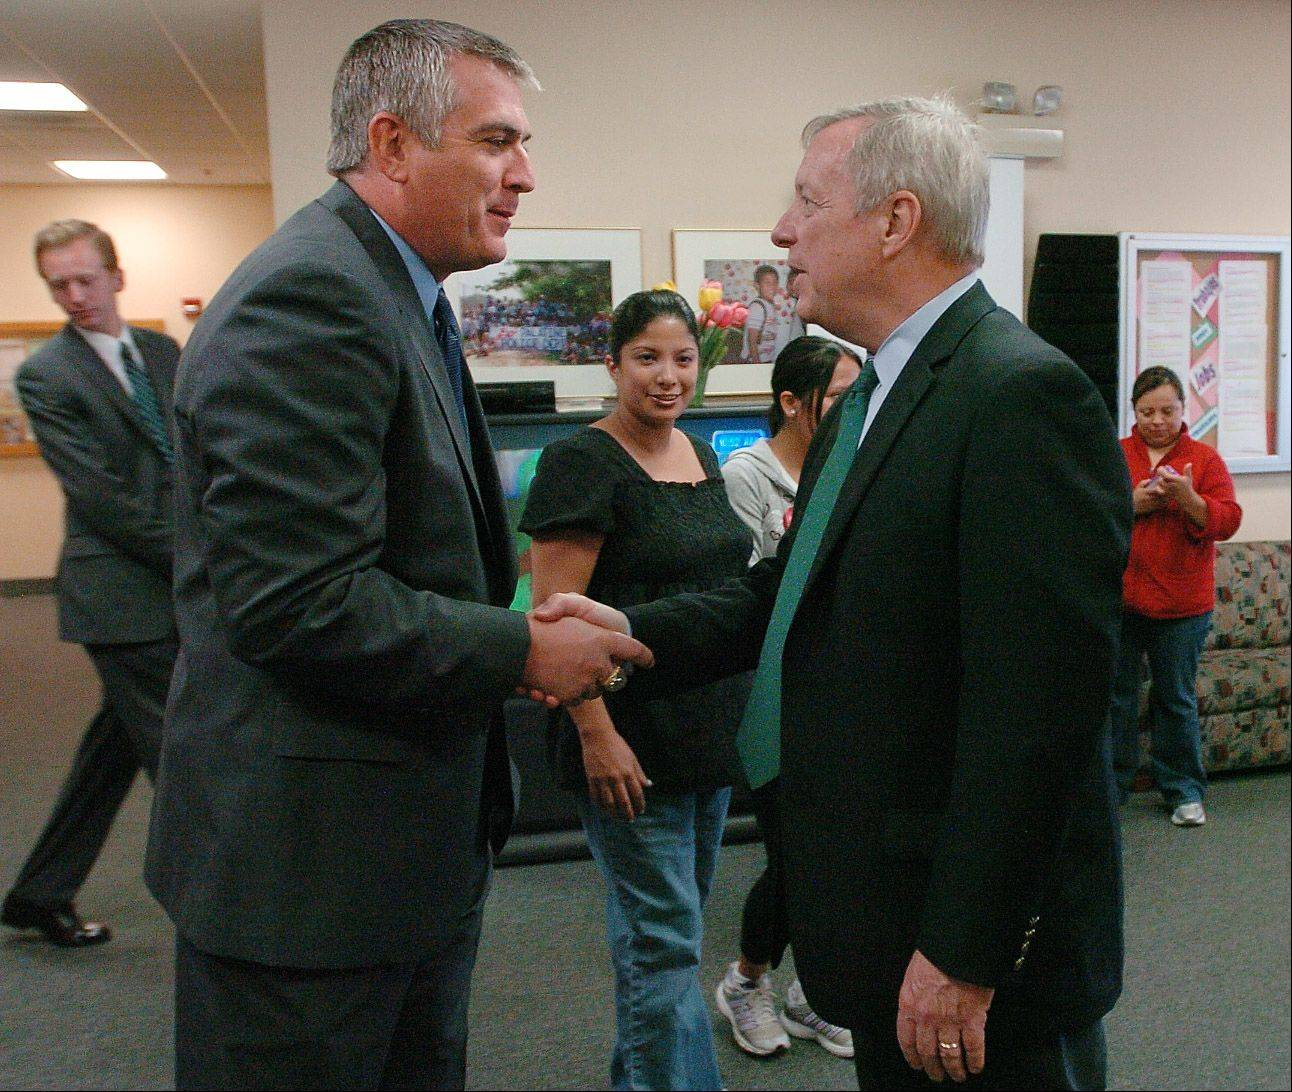 Dick Durbin is greeted by Palatine Mayor Jim Schwantz.